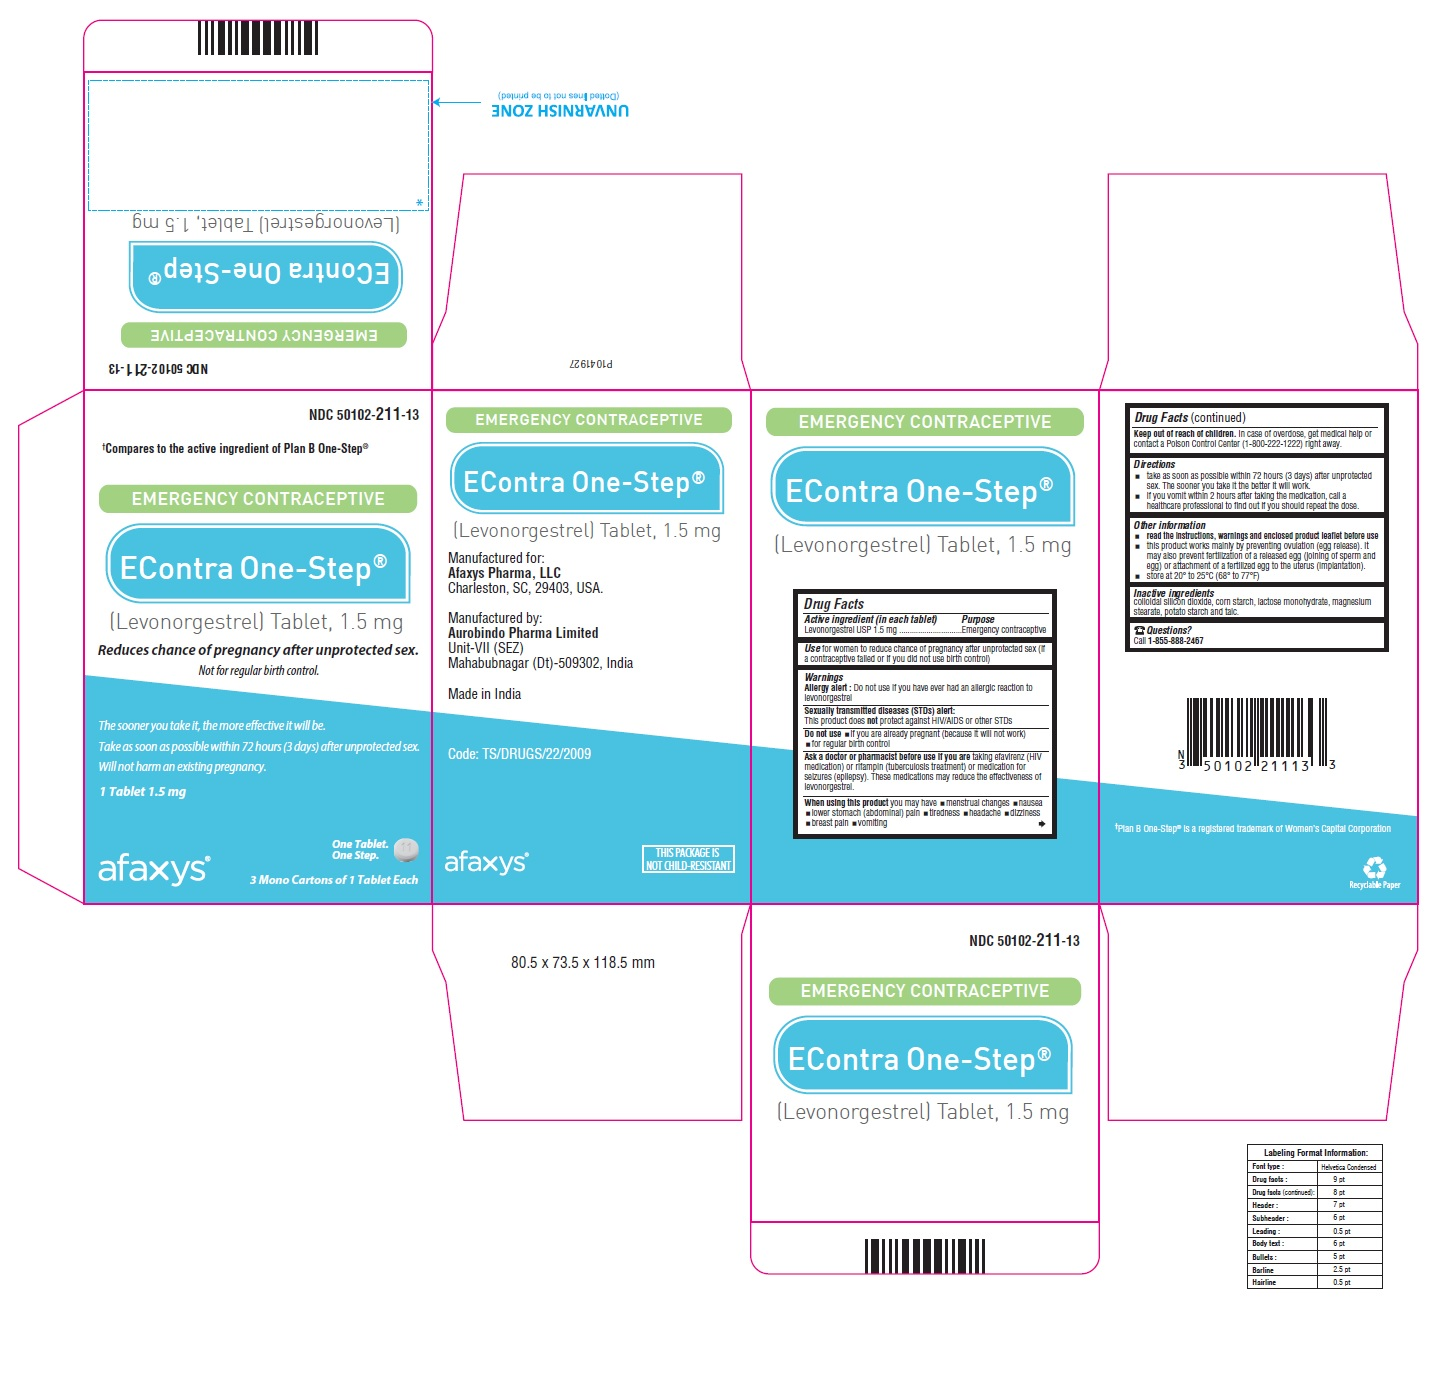 PACKAGE LABEL-PRINCIPAL DISPLAY PANEL - 1.5 mg (6 Blister Carton Label)